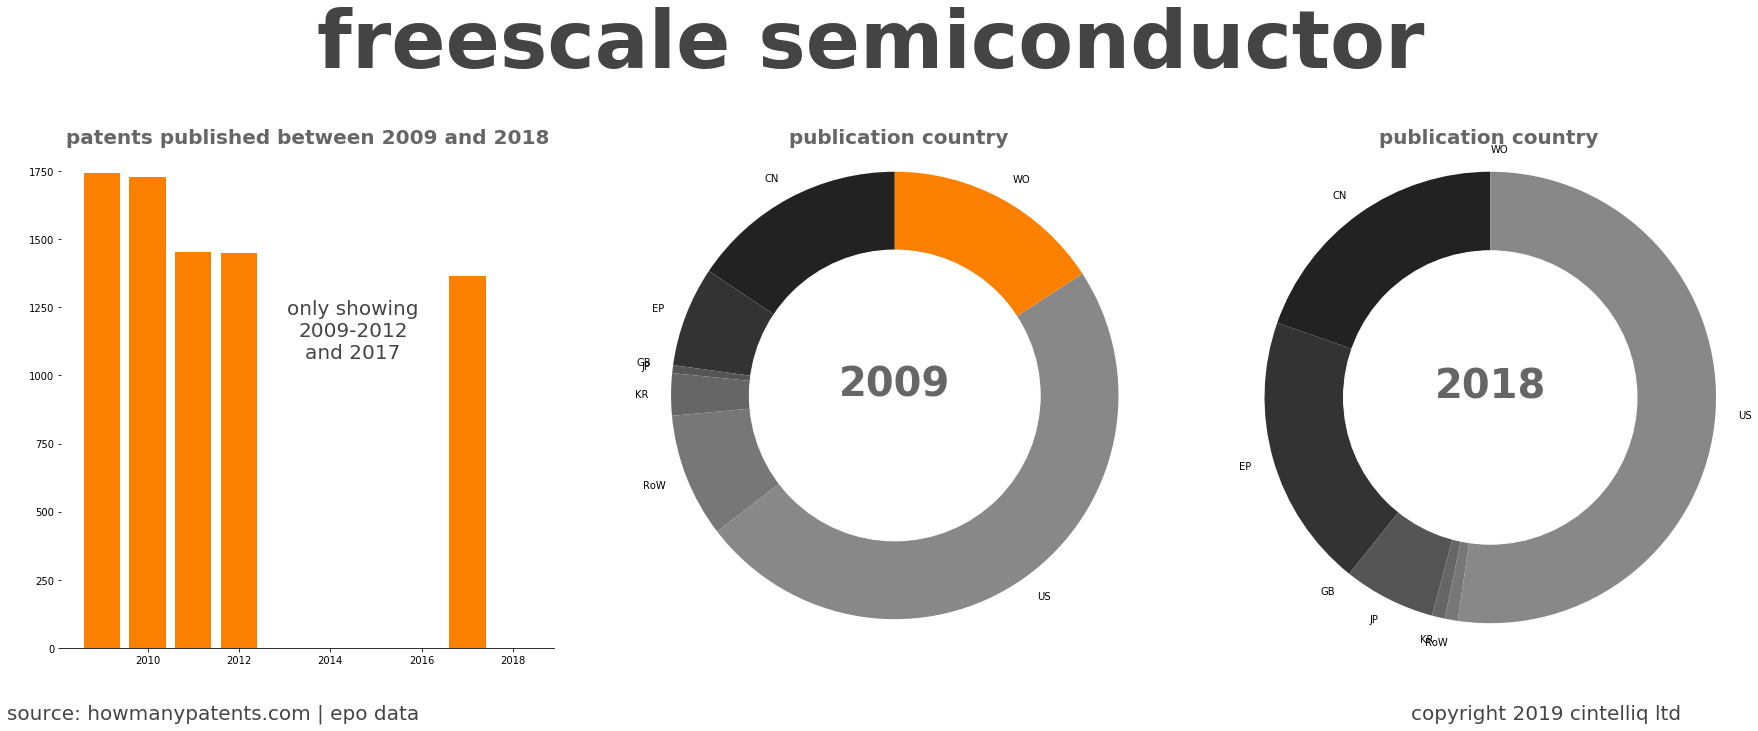 summary of patents for Freescale Semiconductor